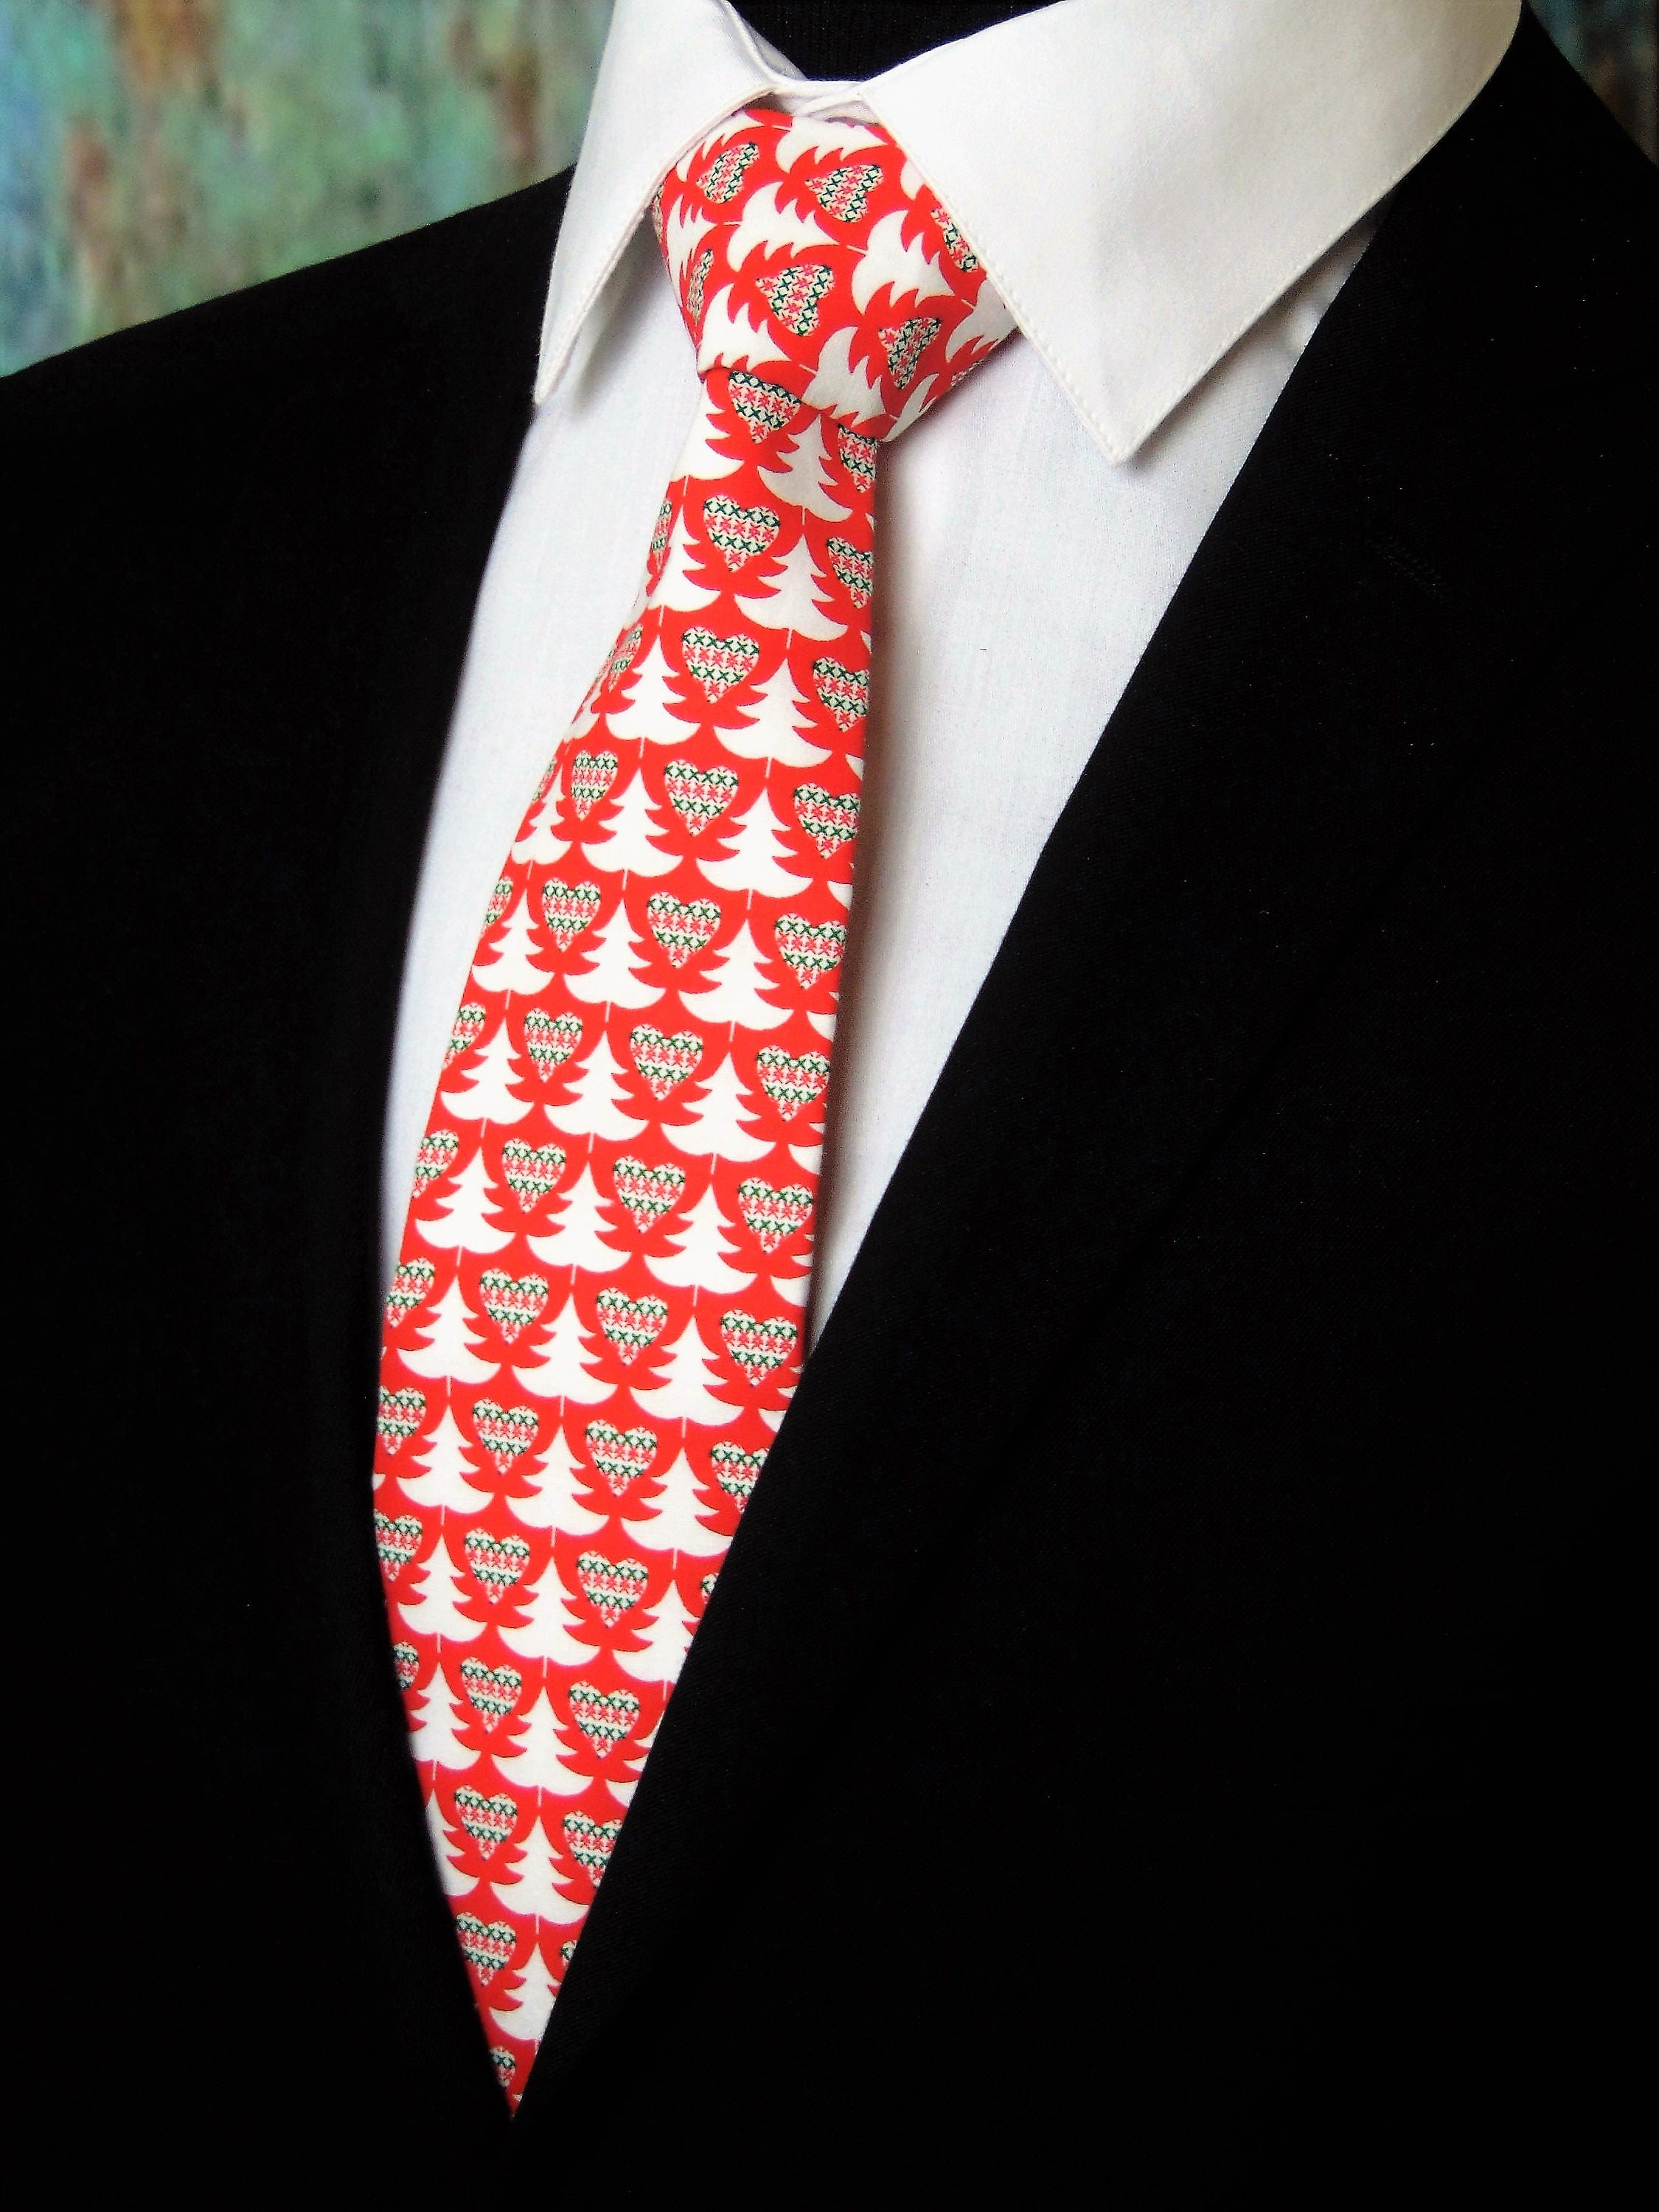 Christmas tie classic christmas neck tie for men also available as christmas tie classic christmas neck tie for men also available as a skinny tie ccuart Image collections